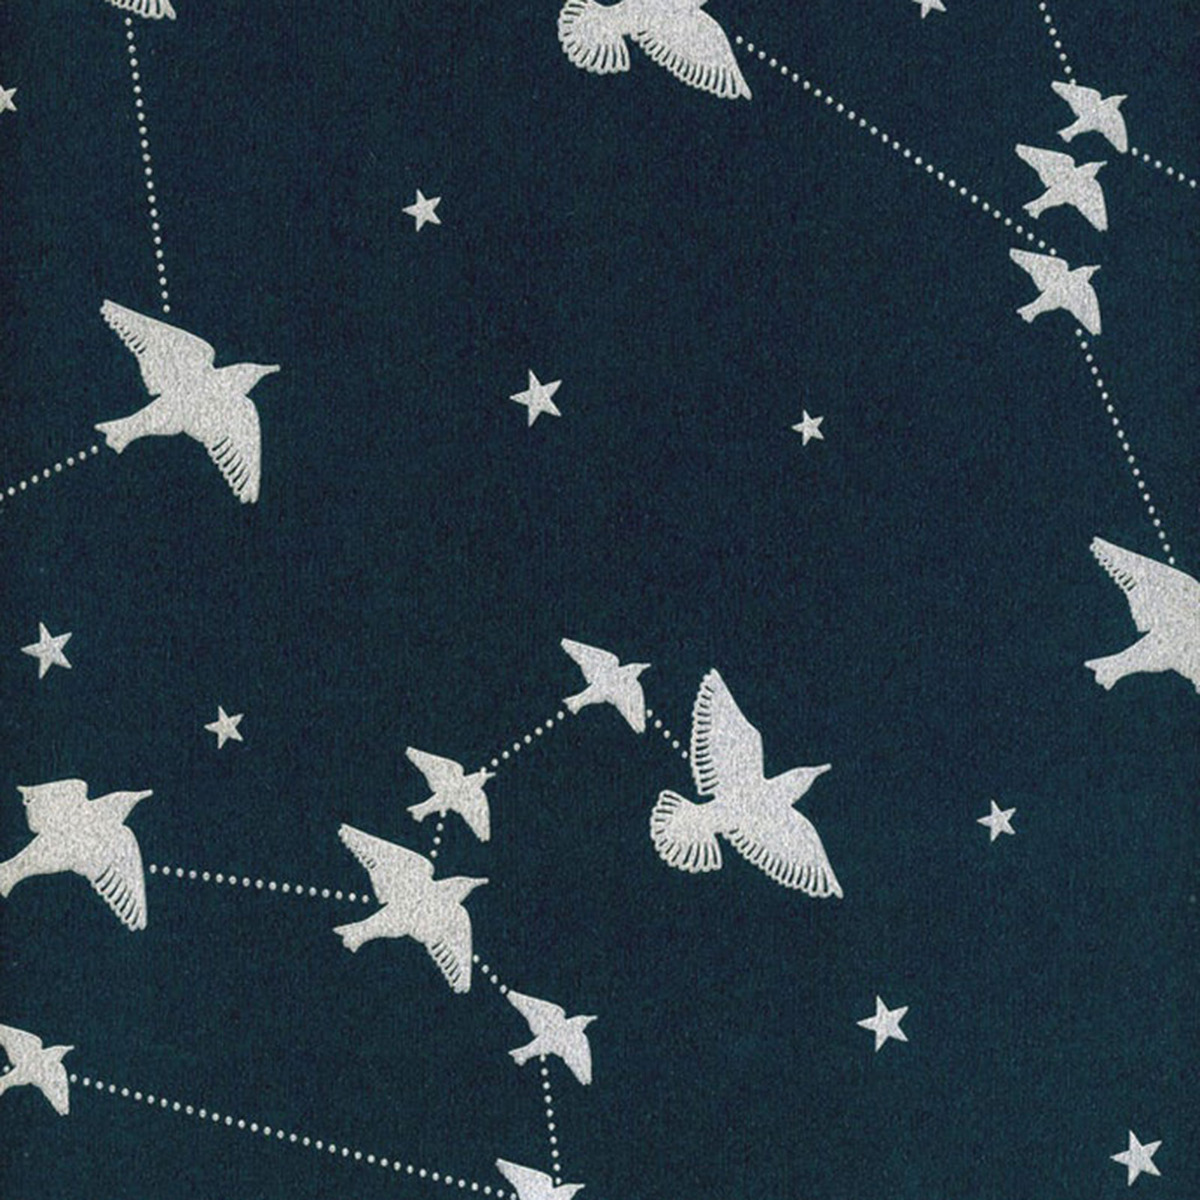 starling star bird wallpaper white navy silver